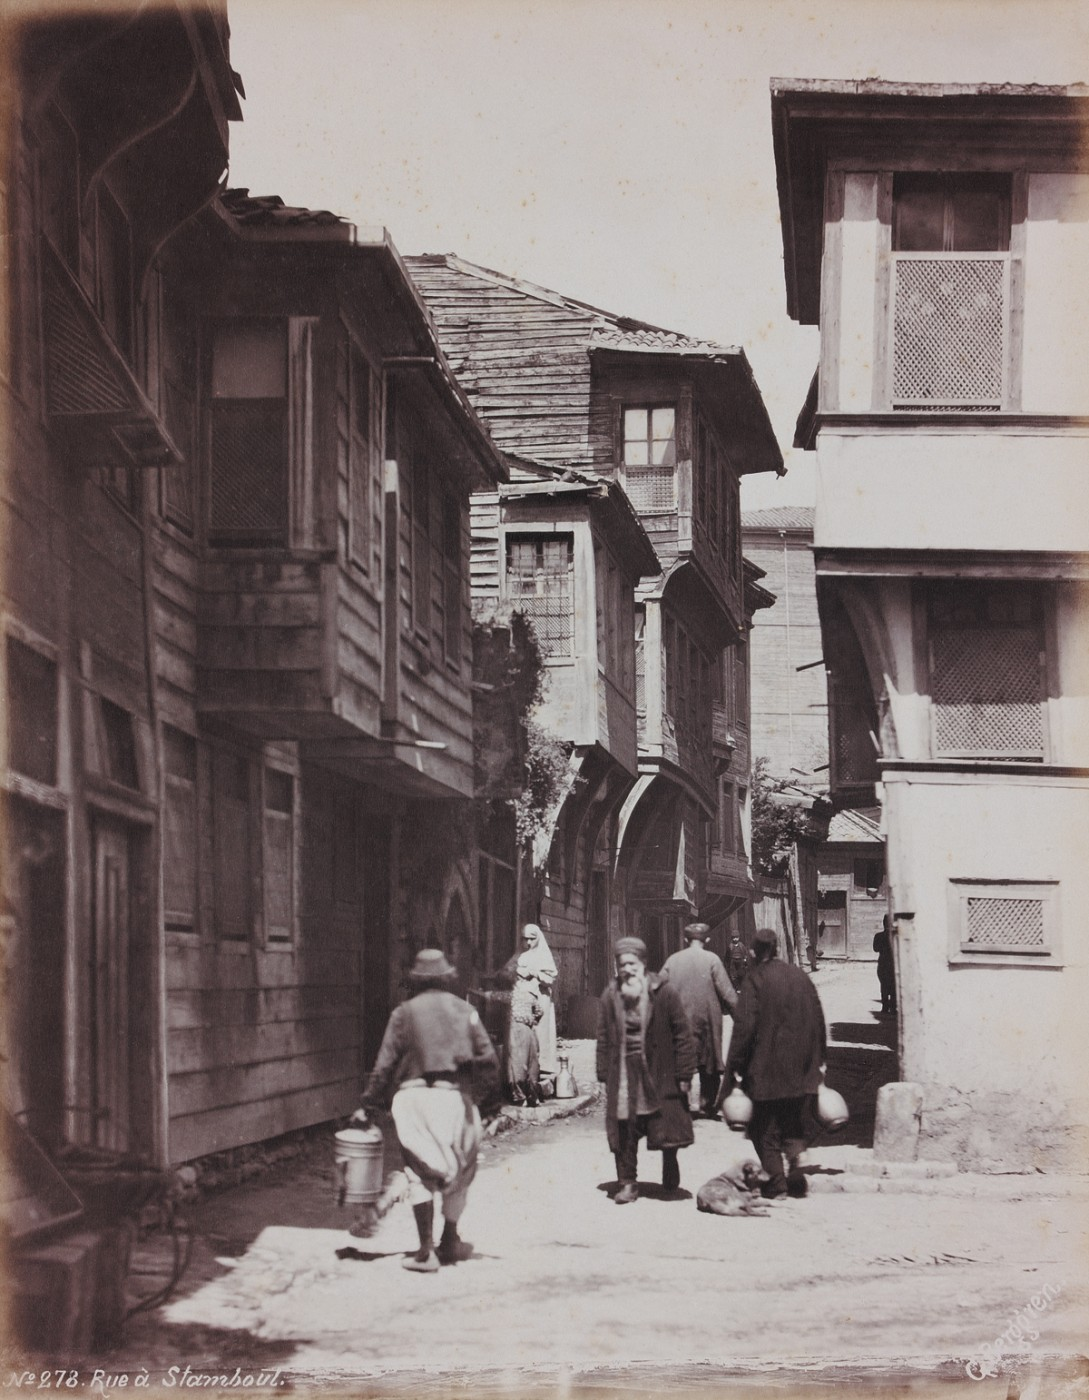 Guillaume Berggren, </span><span><em>Wooden Houses</em>, </span><span>c. 1885. Collodion print. Courtesy of the Ömer M. Koç, private collection.